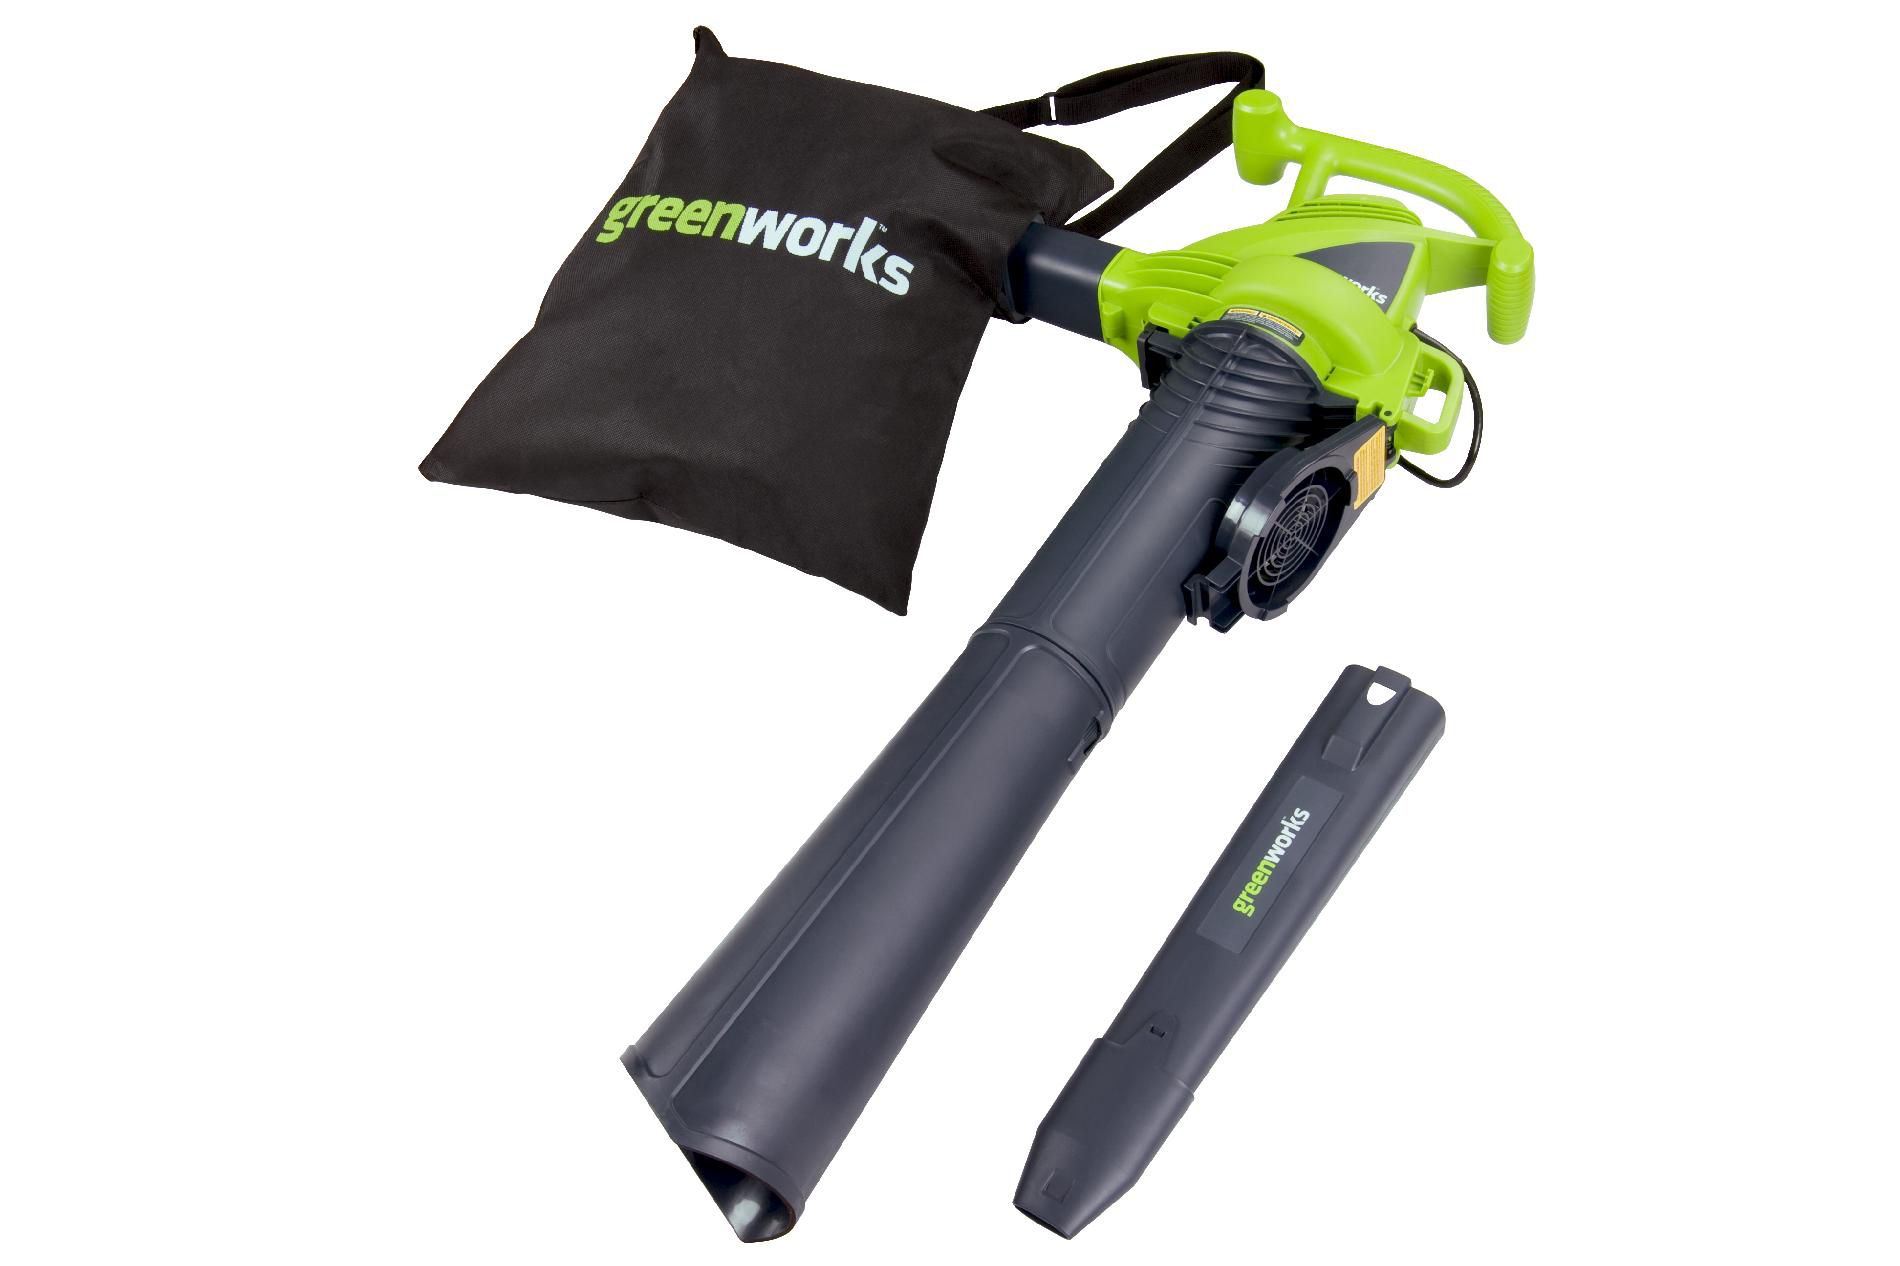 Greenworks 12 AH 2 Speed Electric Blower